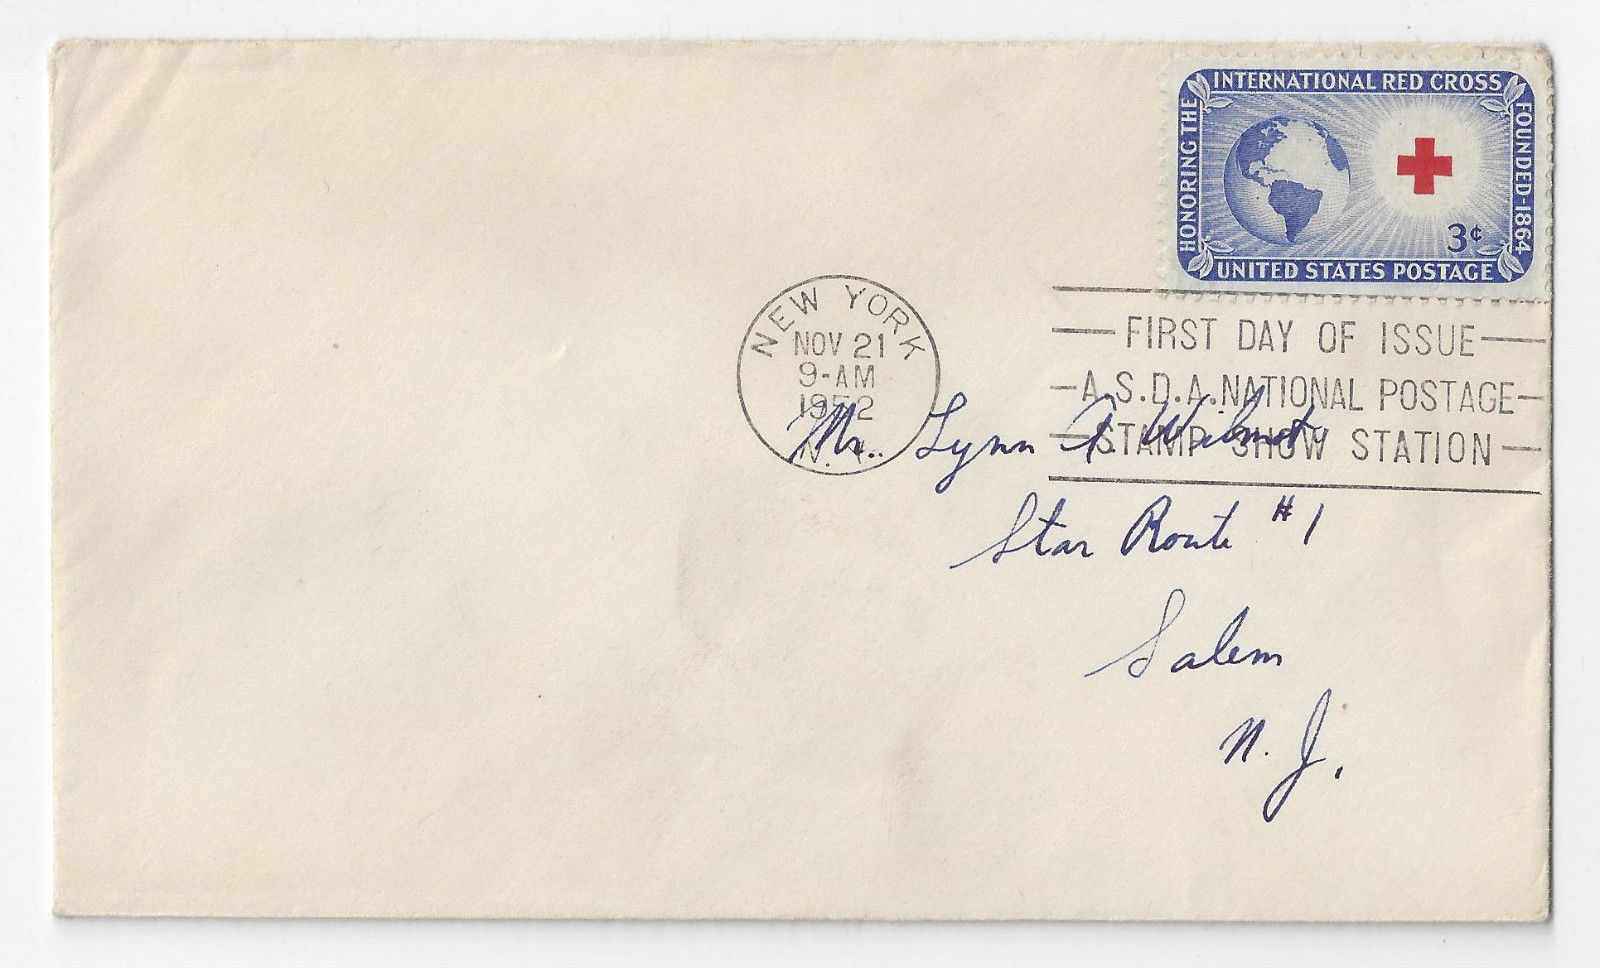 Primary image for FDC Sc 1016 Red Cross Issue 1952 ASDA National Stamp Show Station